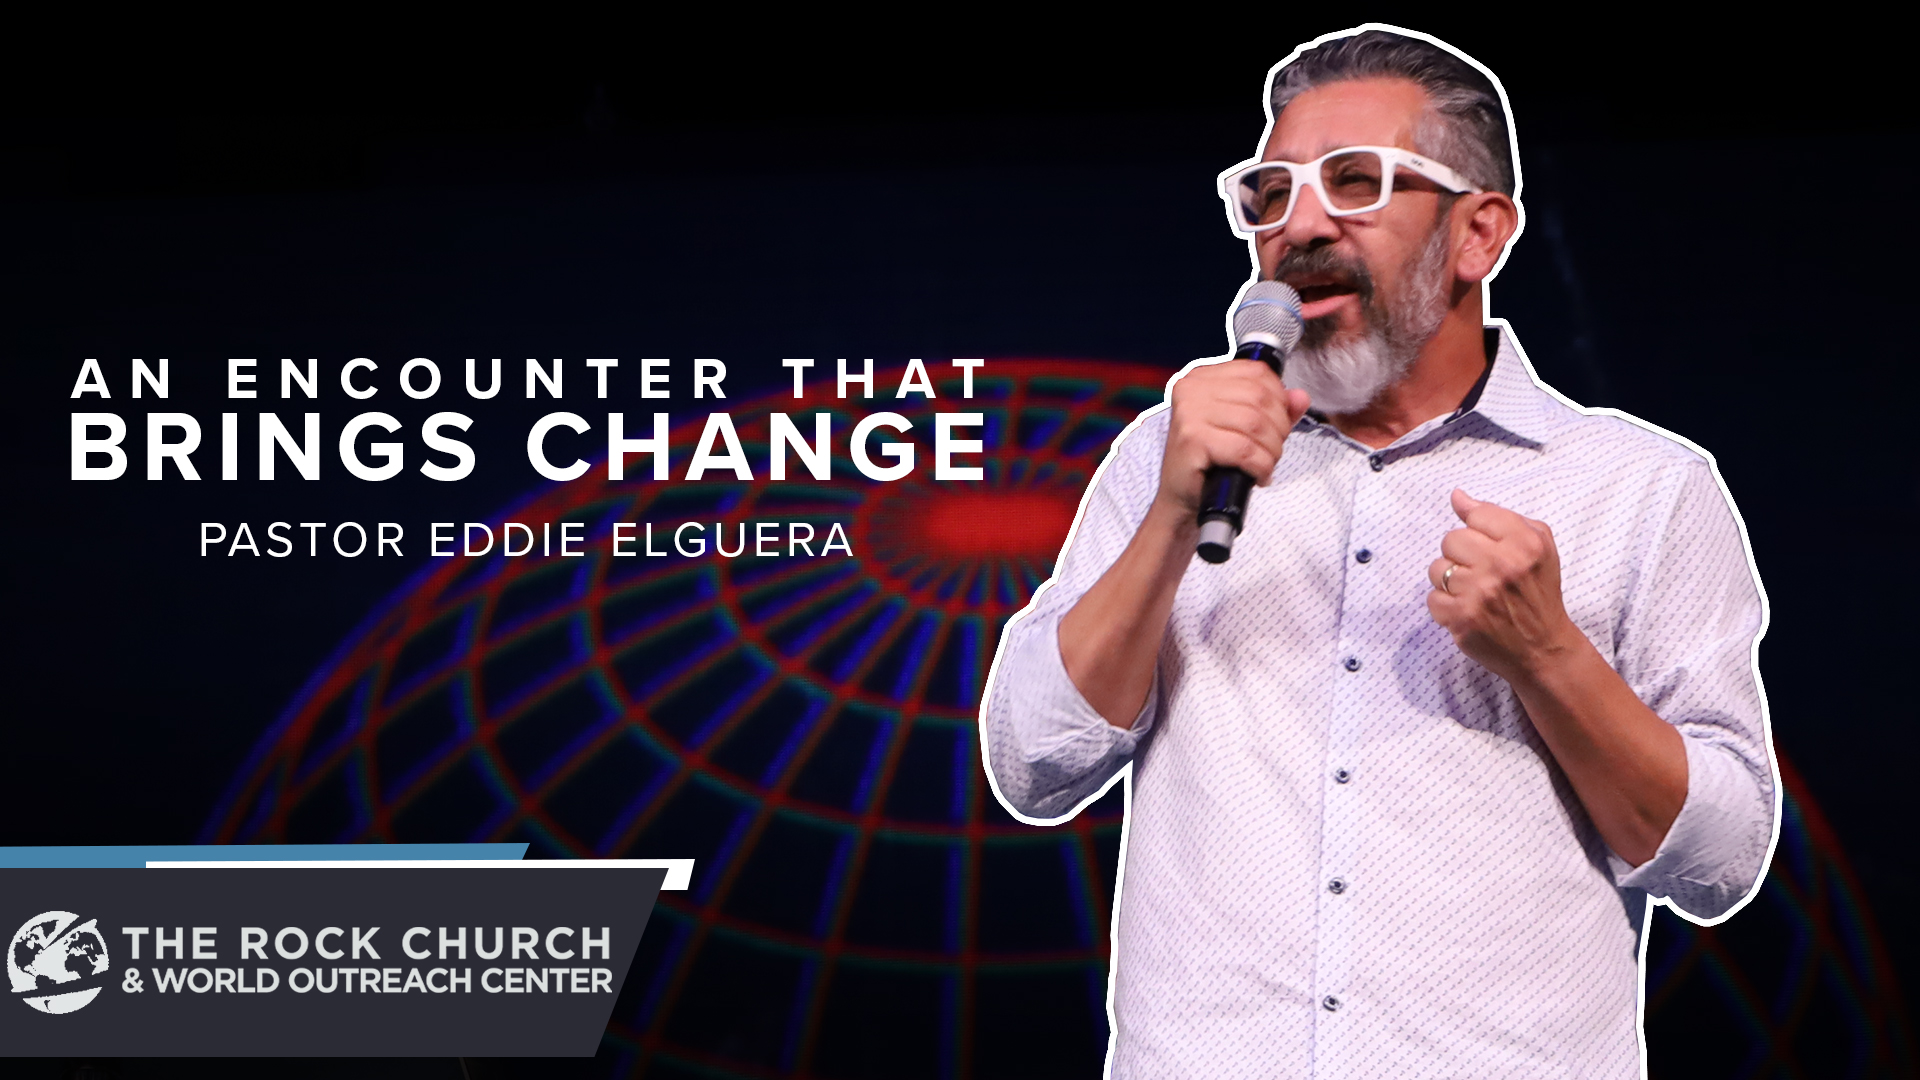 Watch An Encounter That Brings Change